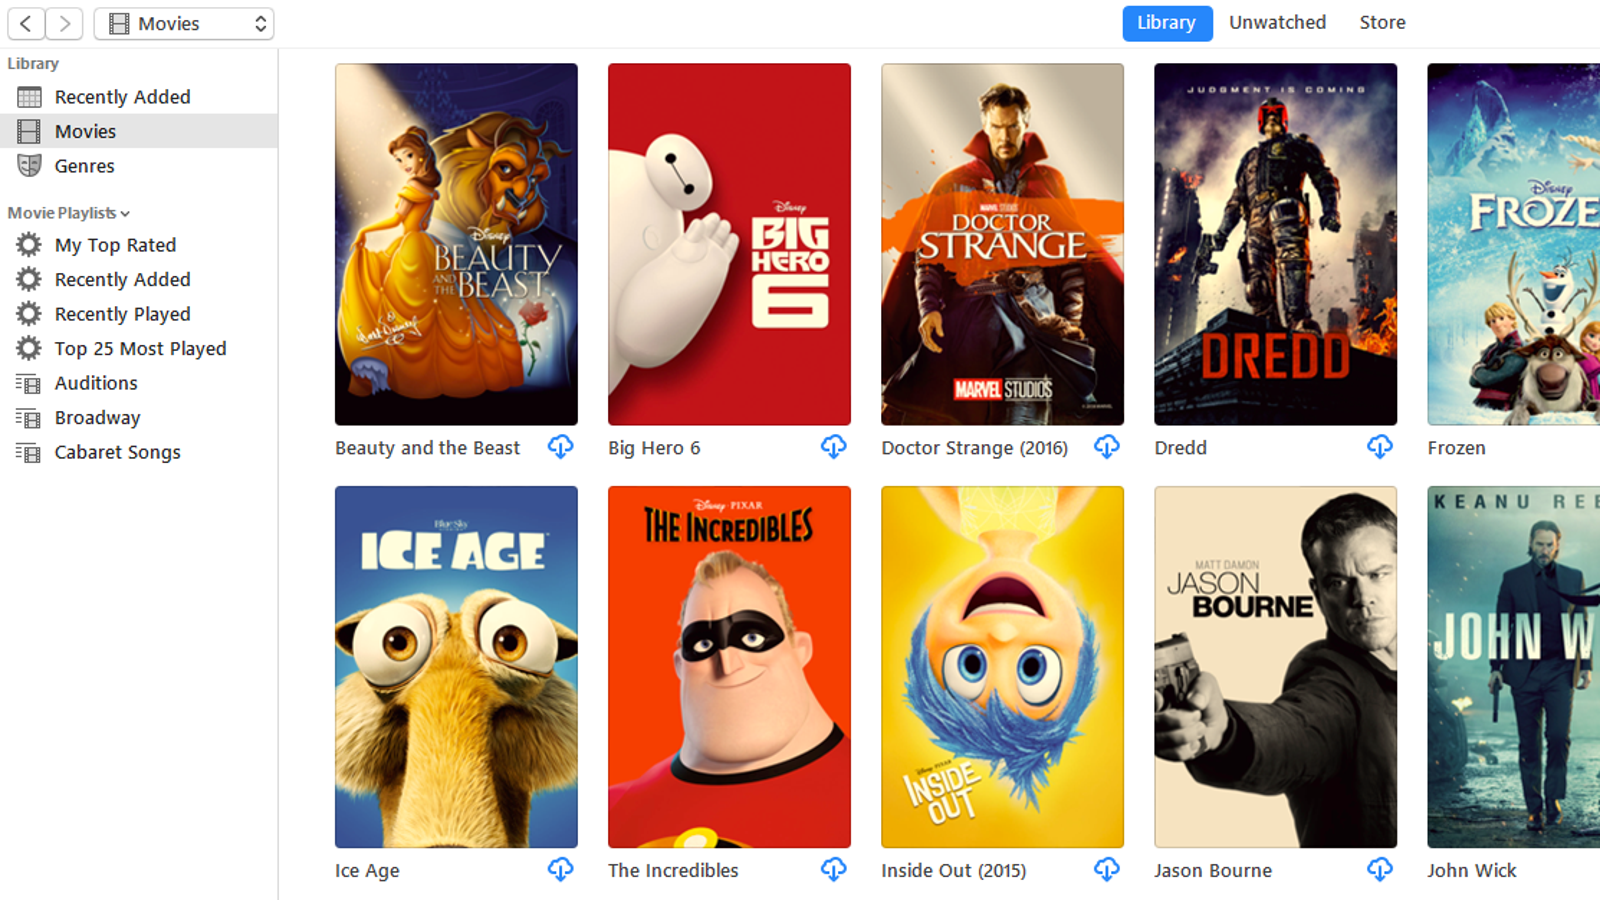 How to Get a 4K Movie on the iTunes Store If You Redeemed Your Code